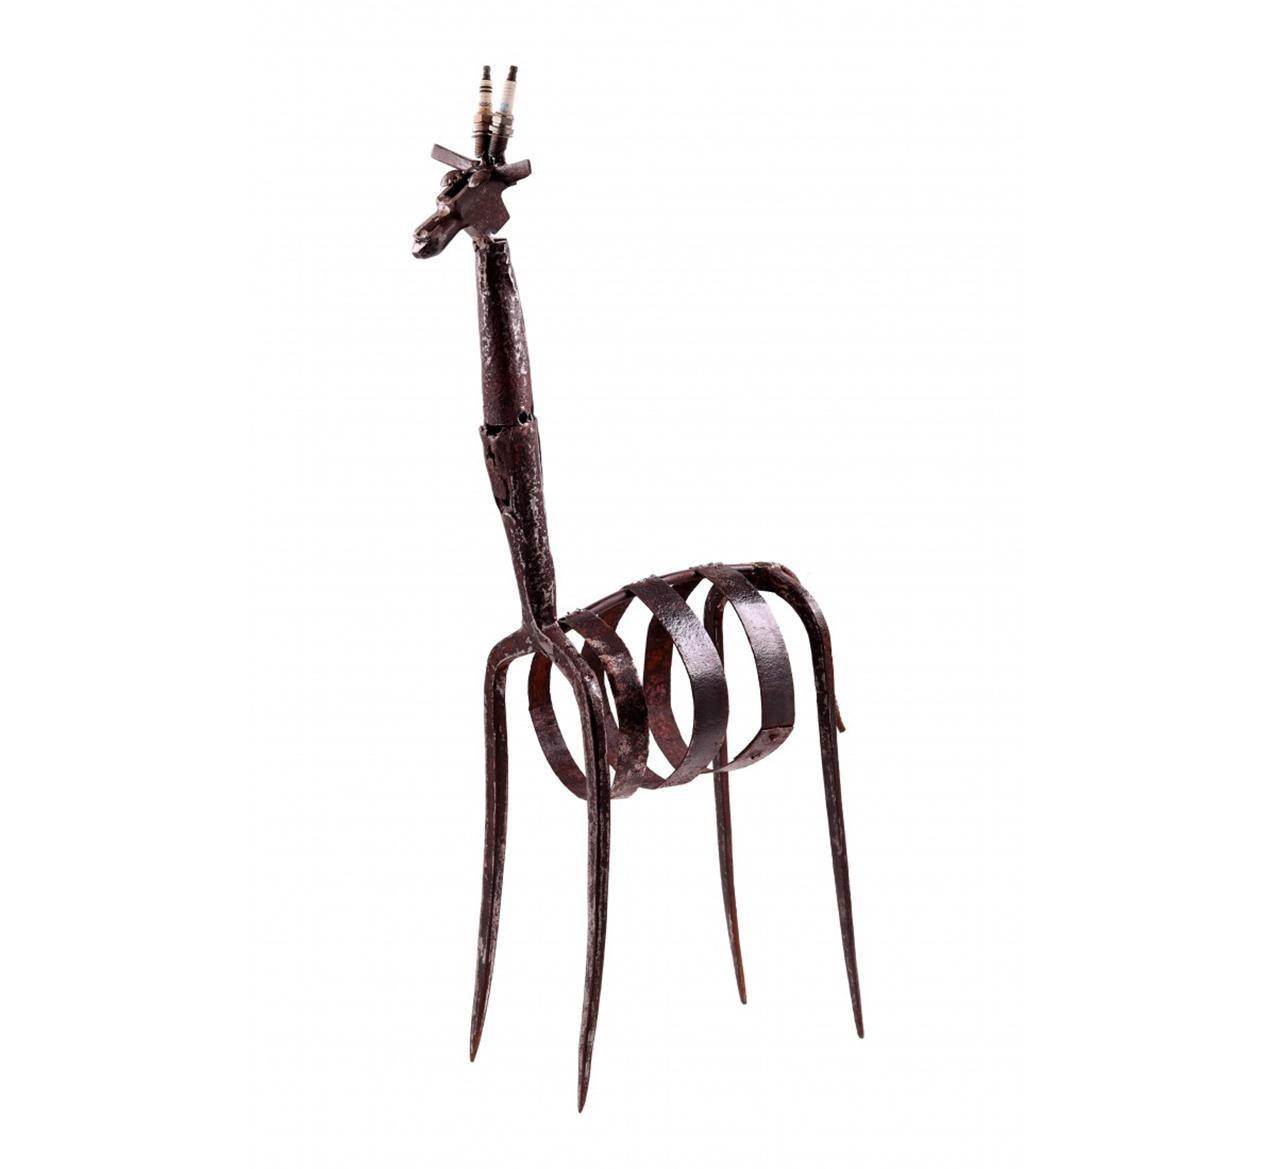 Contemporary Giraffe Sculpture Iron & Mixed Media w use of tools & other objects